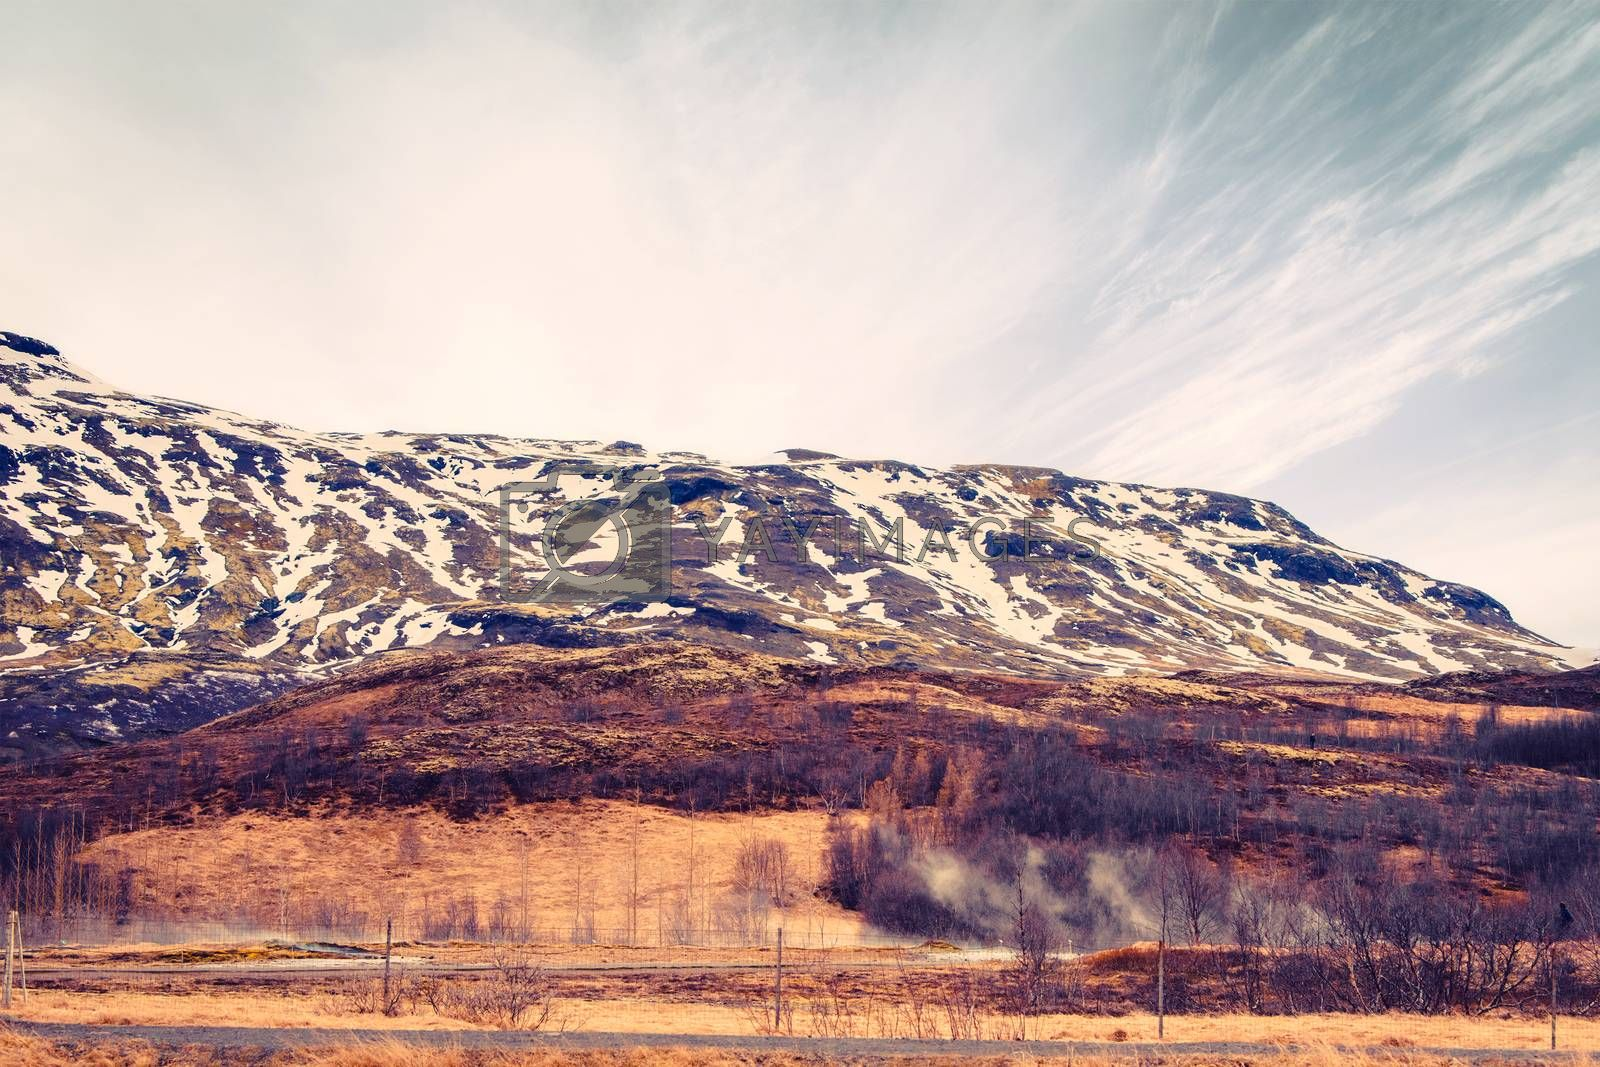 Mountain landscape in Iceland with geothermal fields